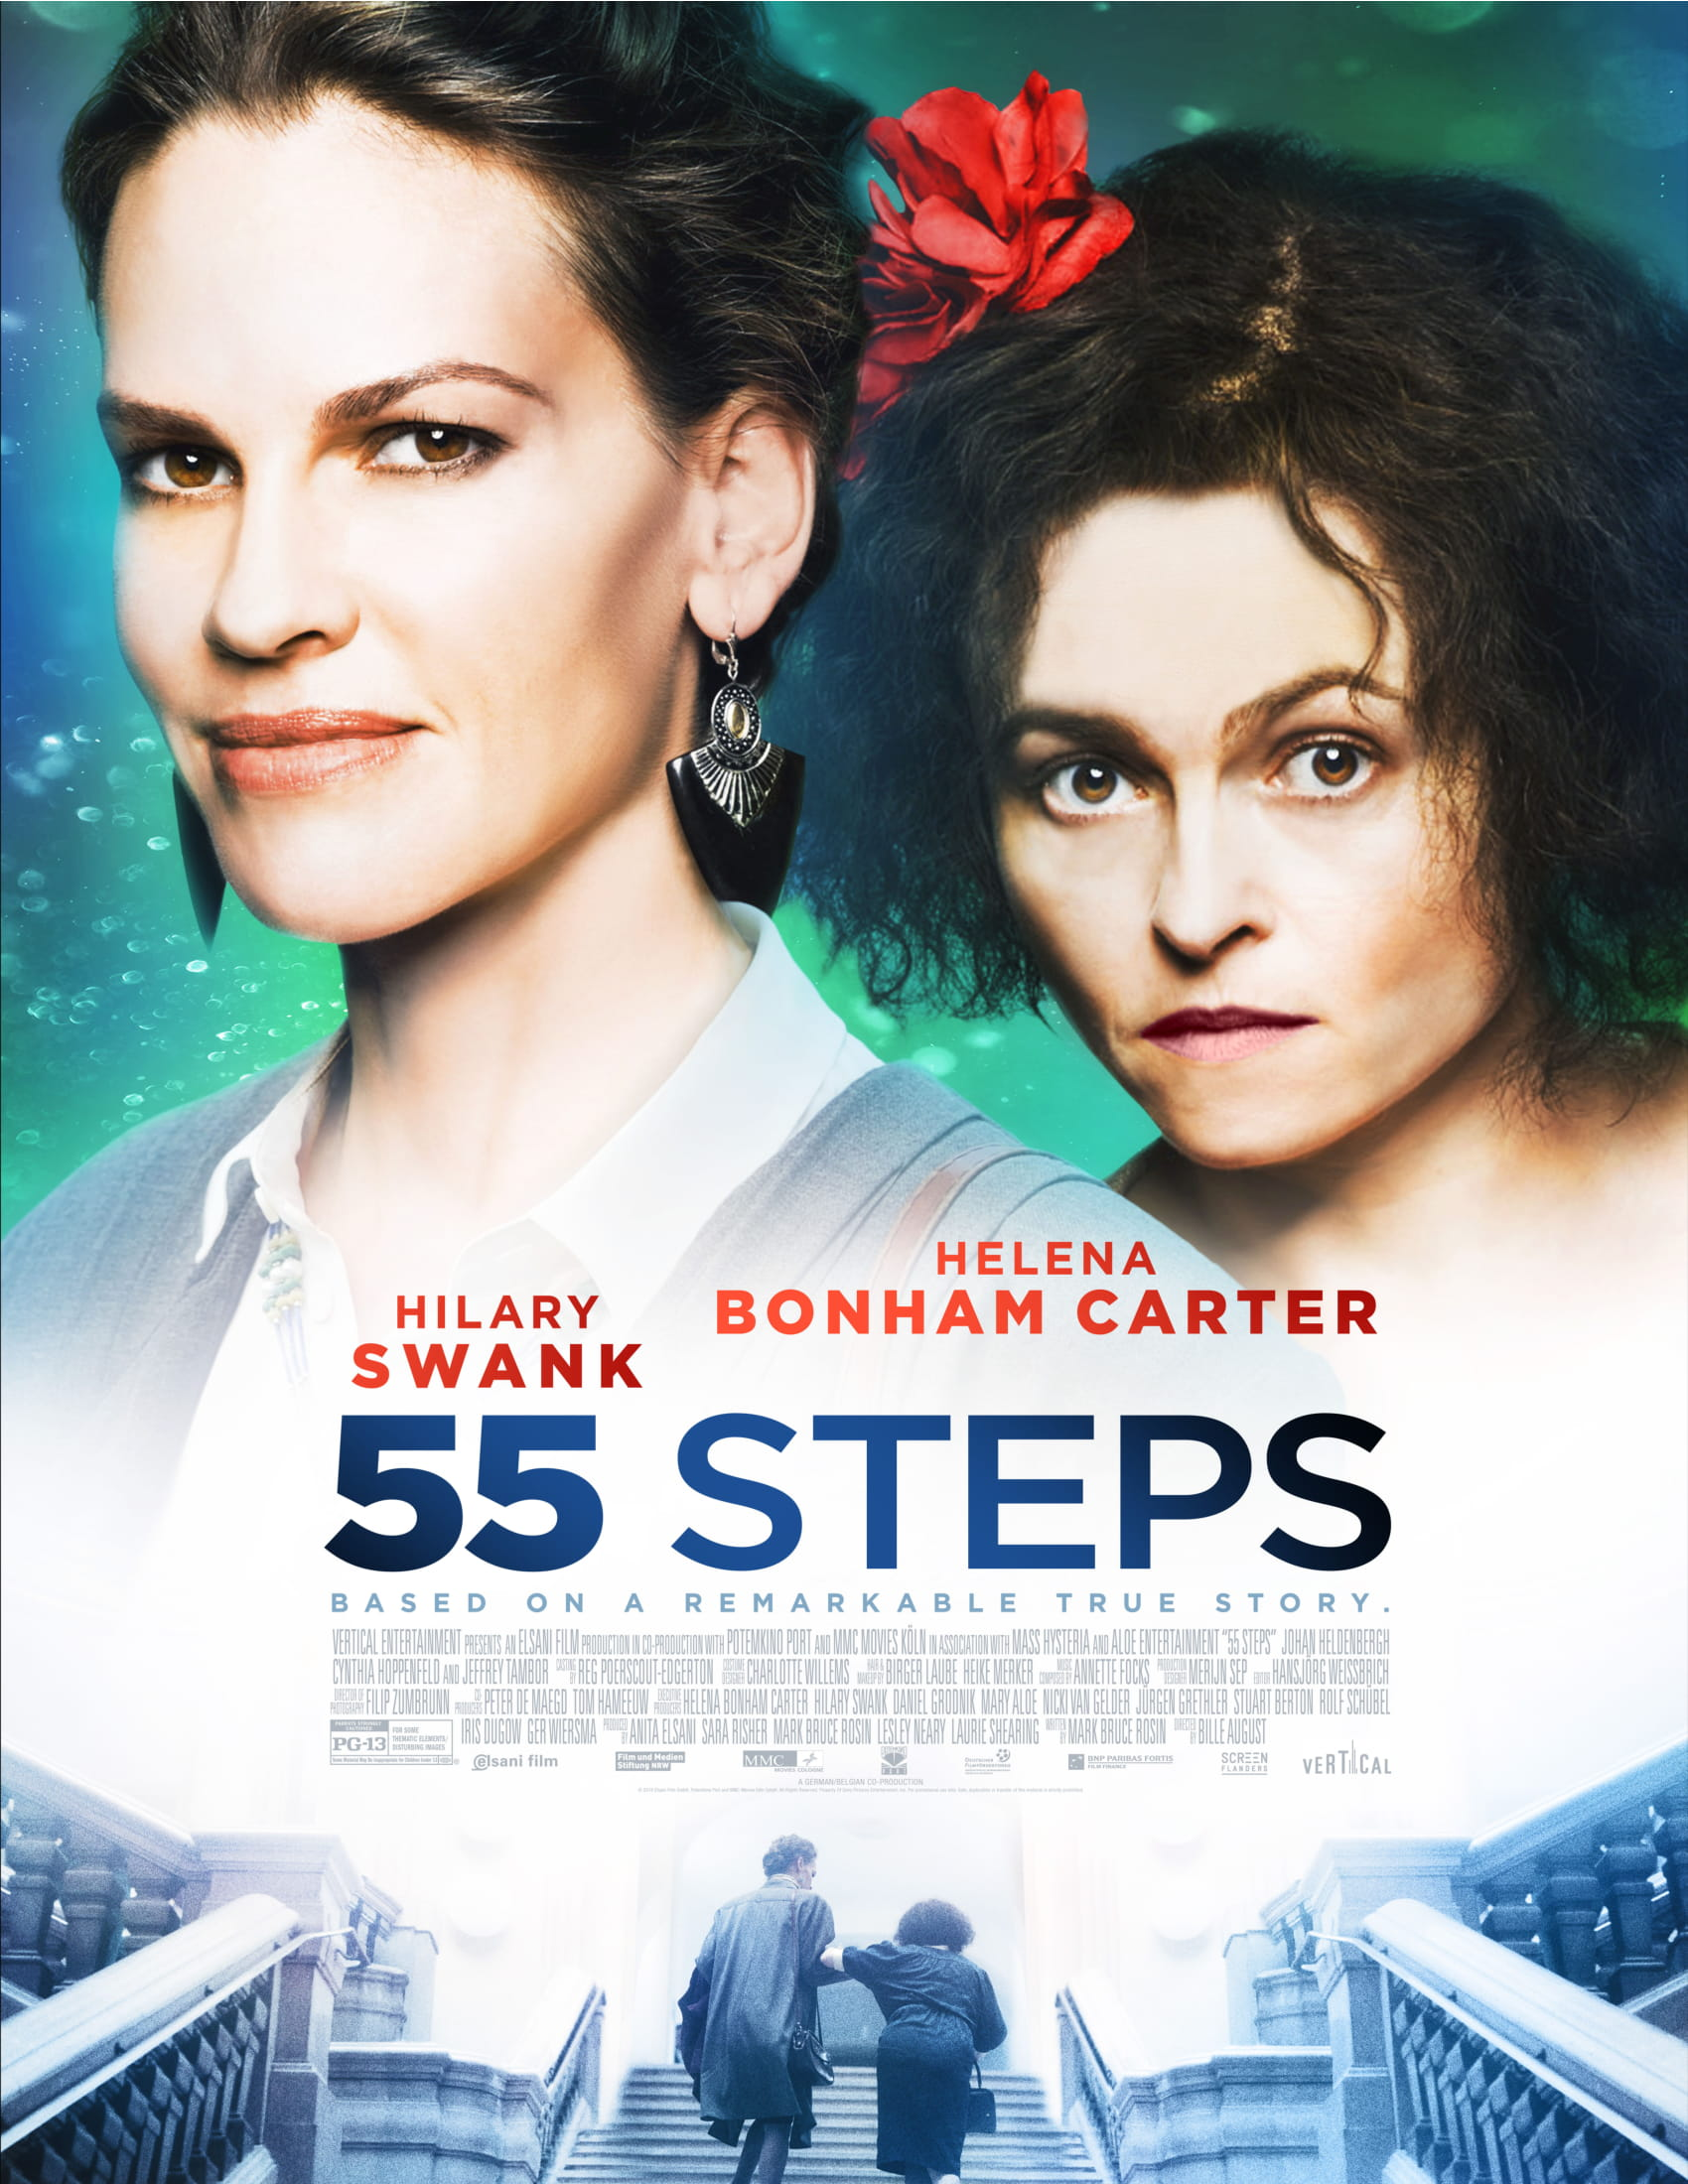 Film poster of 55 Steps, showing Hilary Swank and Helena Bonham Carter.